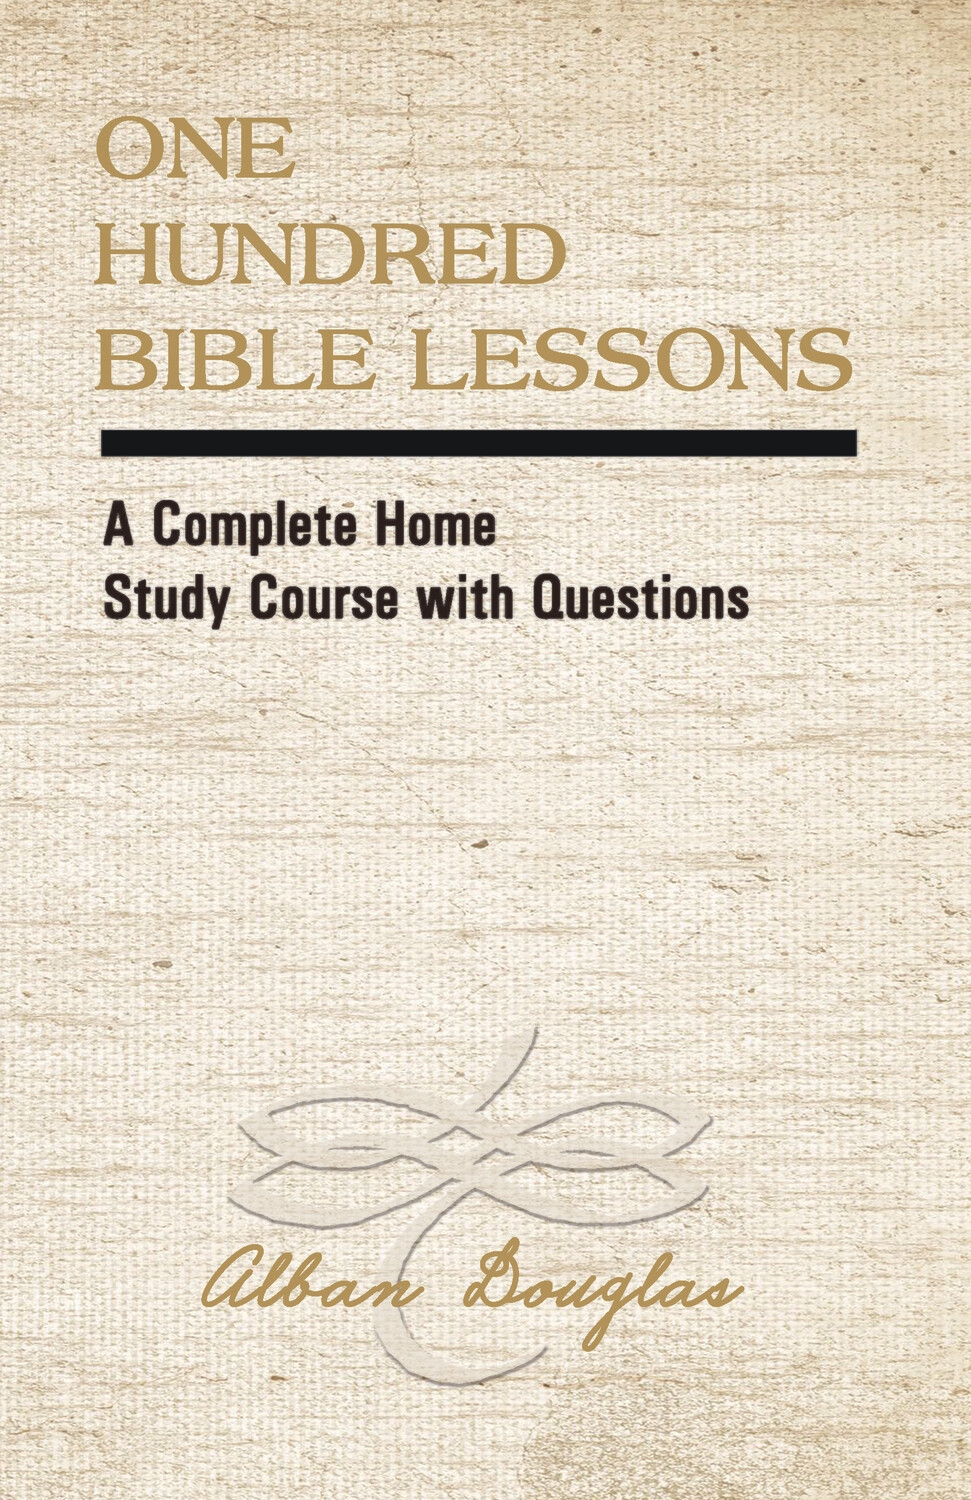 One Hundred Bible Lessons -Reprint perfect bound 5 1/2 x 7 size